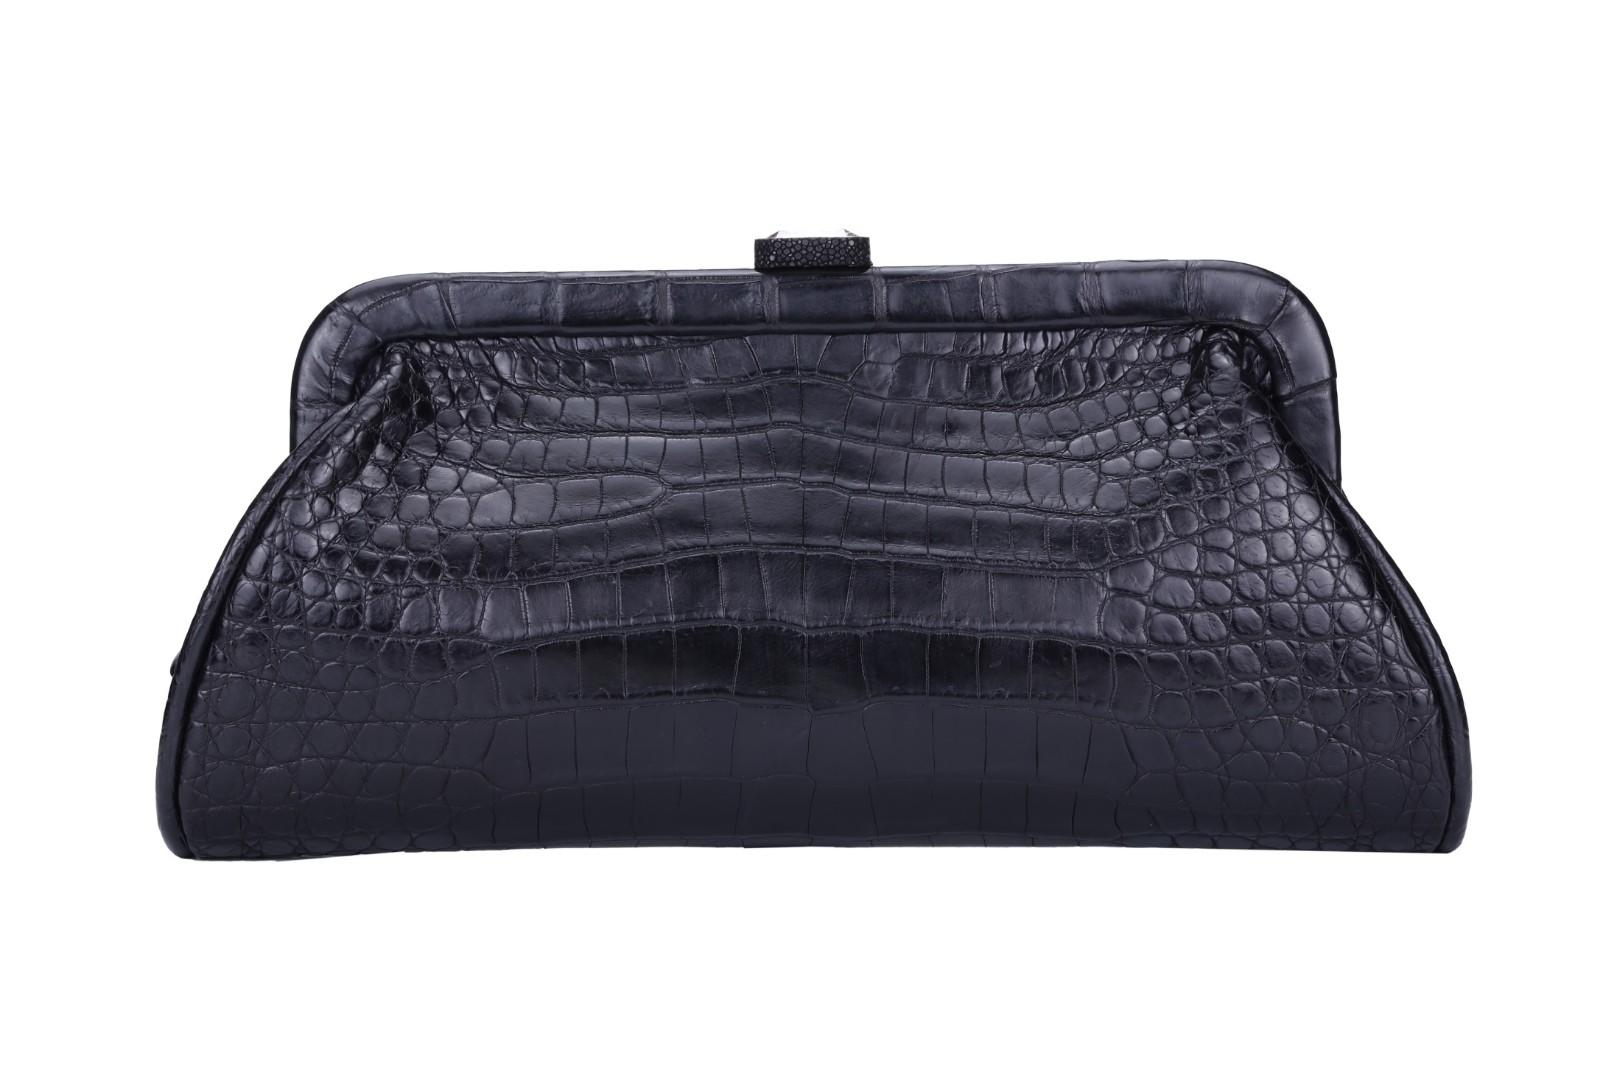 wholesale dinner clutch bag check now for women